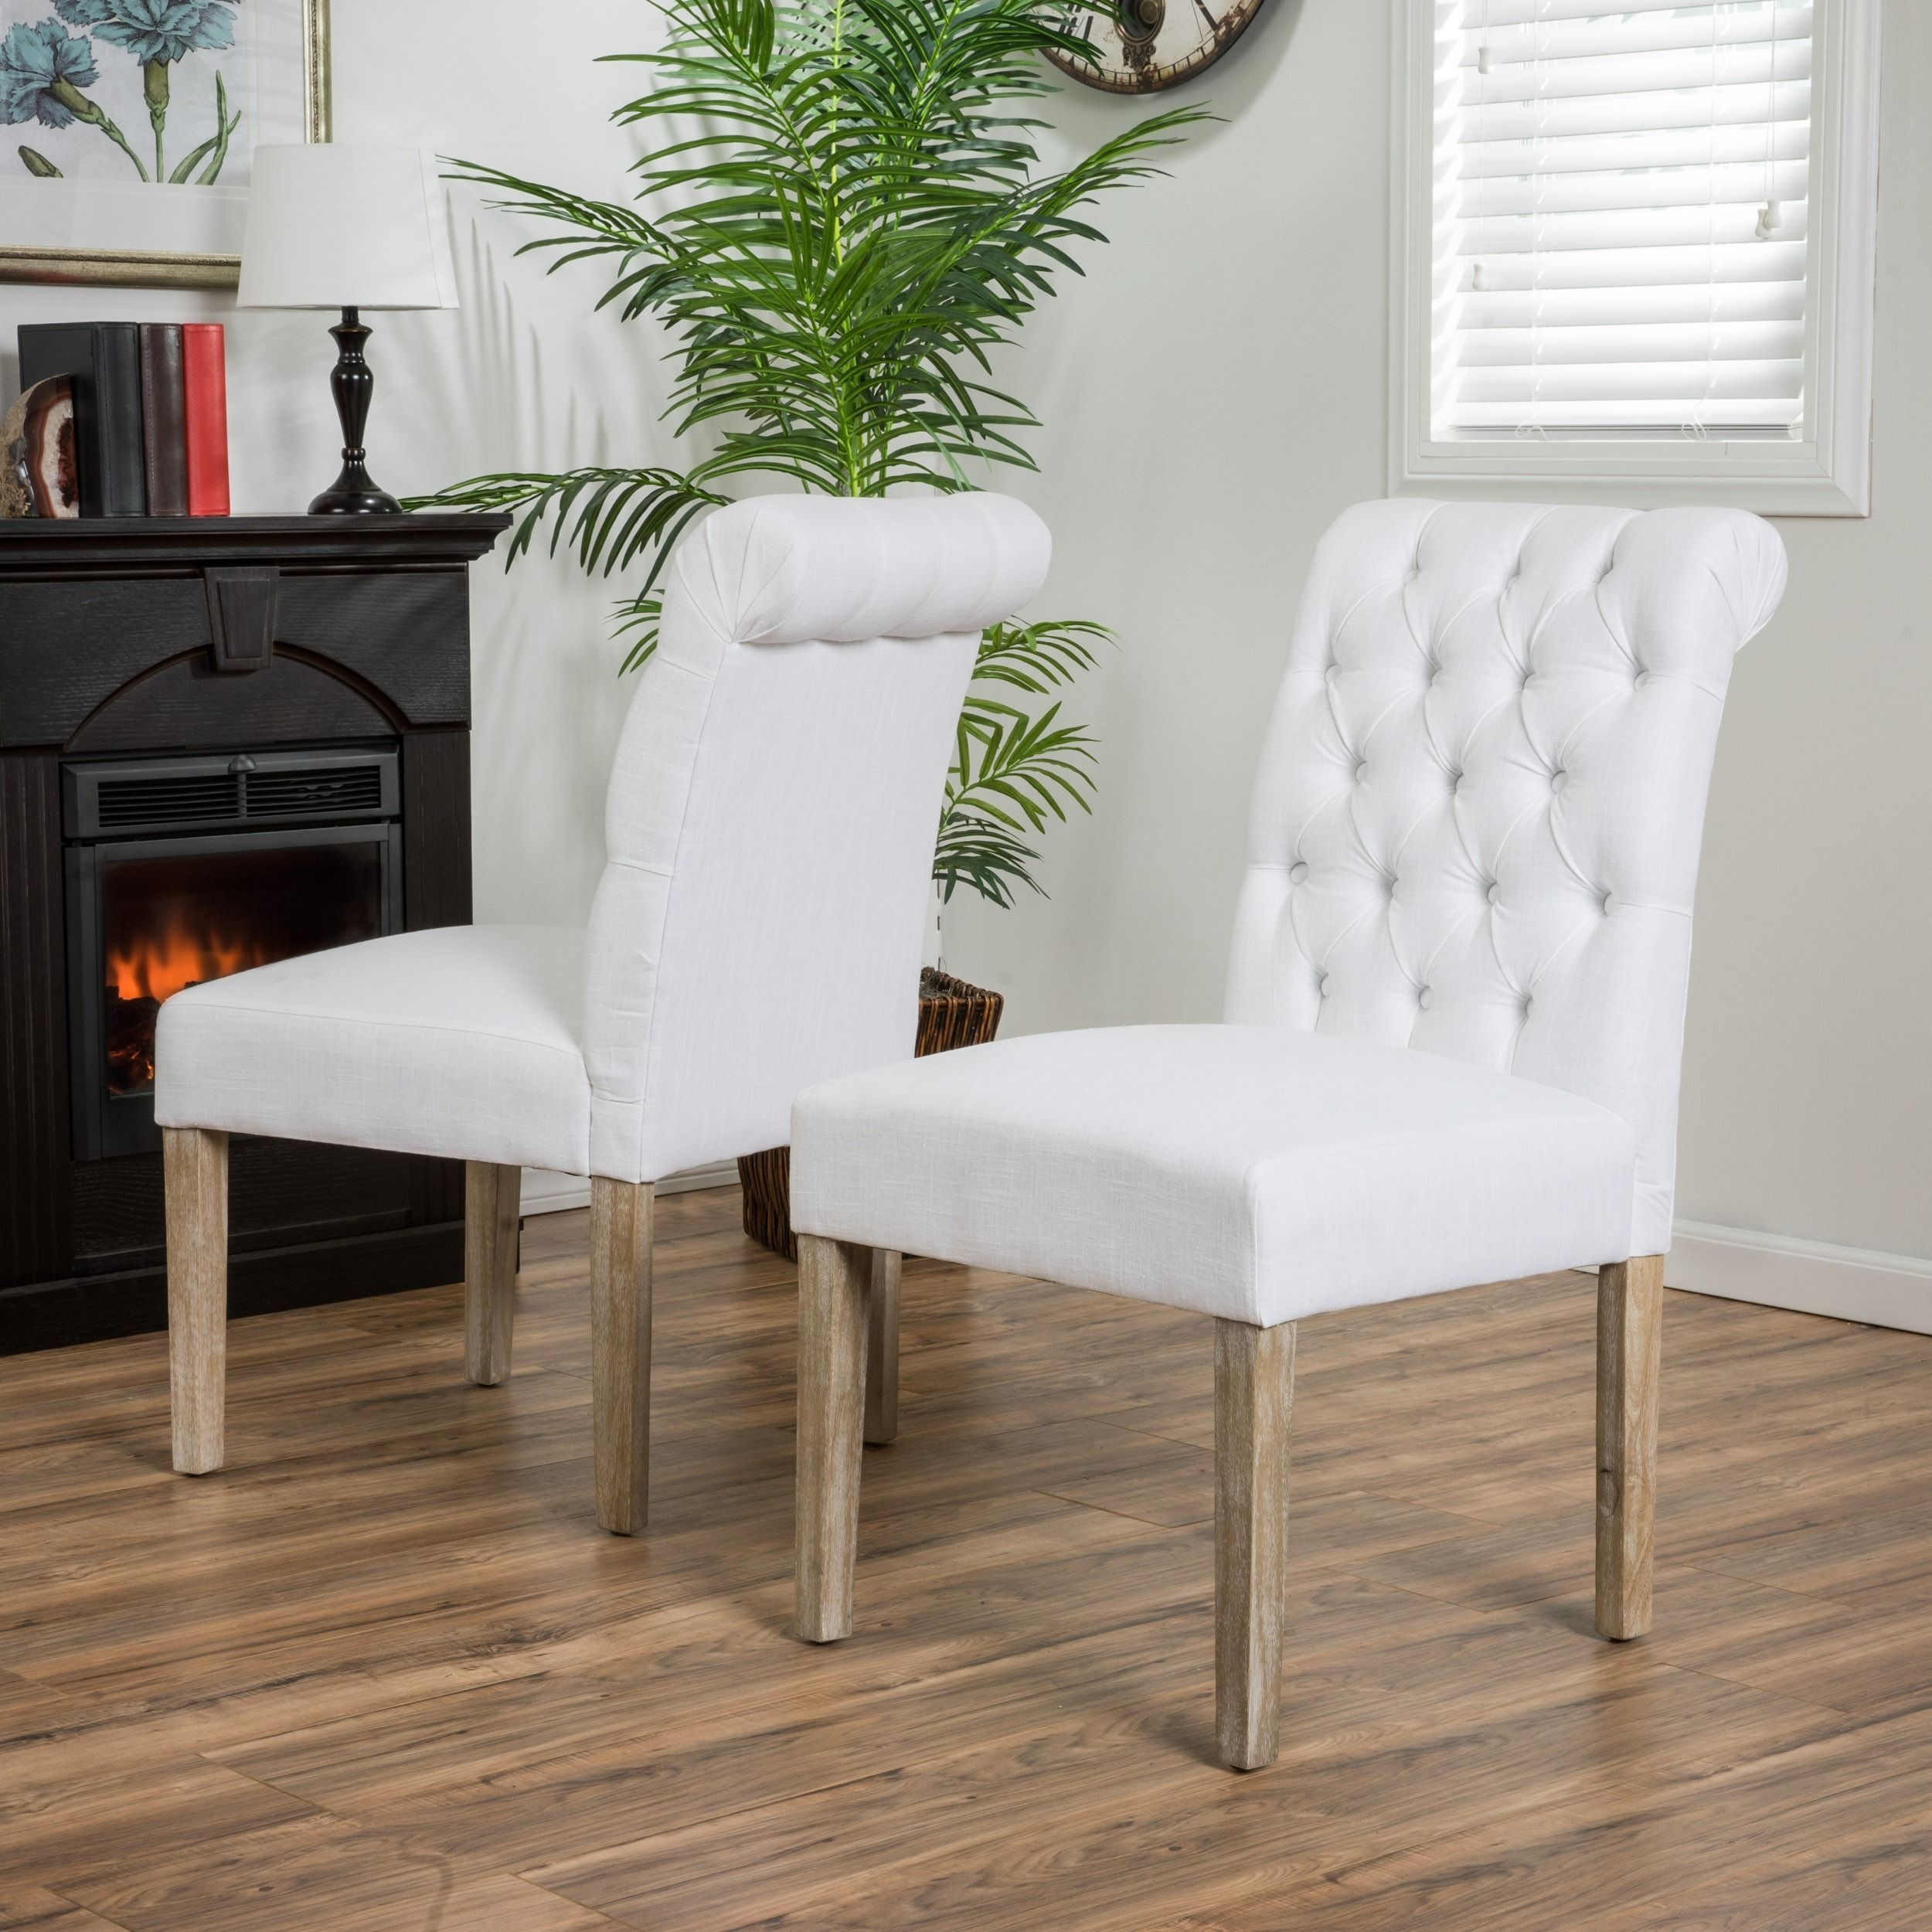 With an elegantly rolled top the dinah white dining chairs are